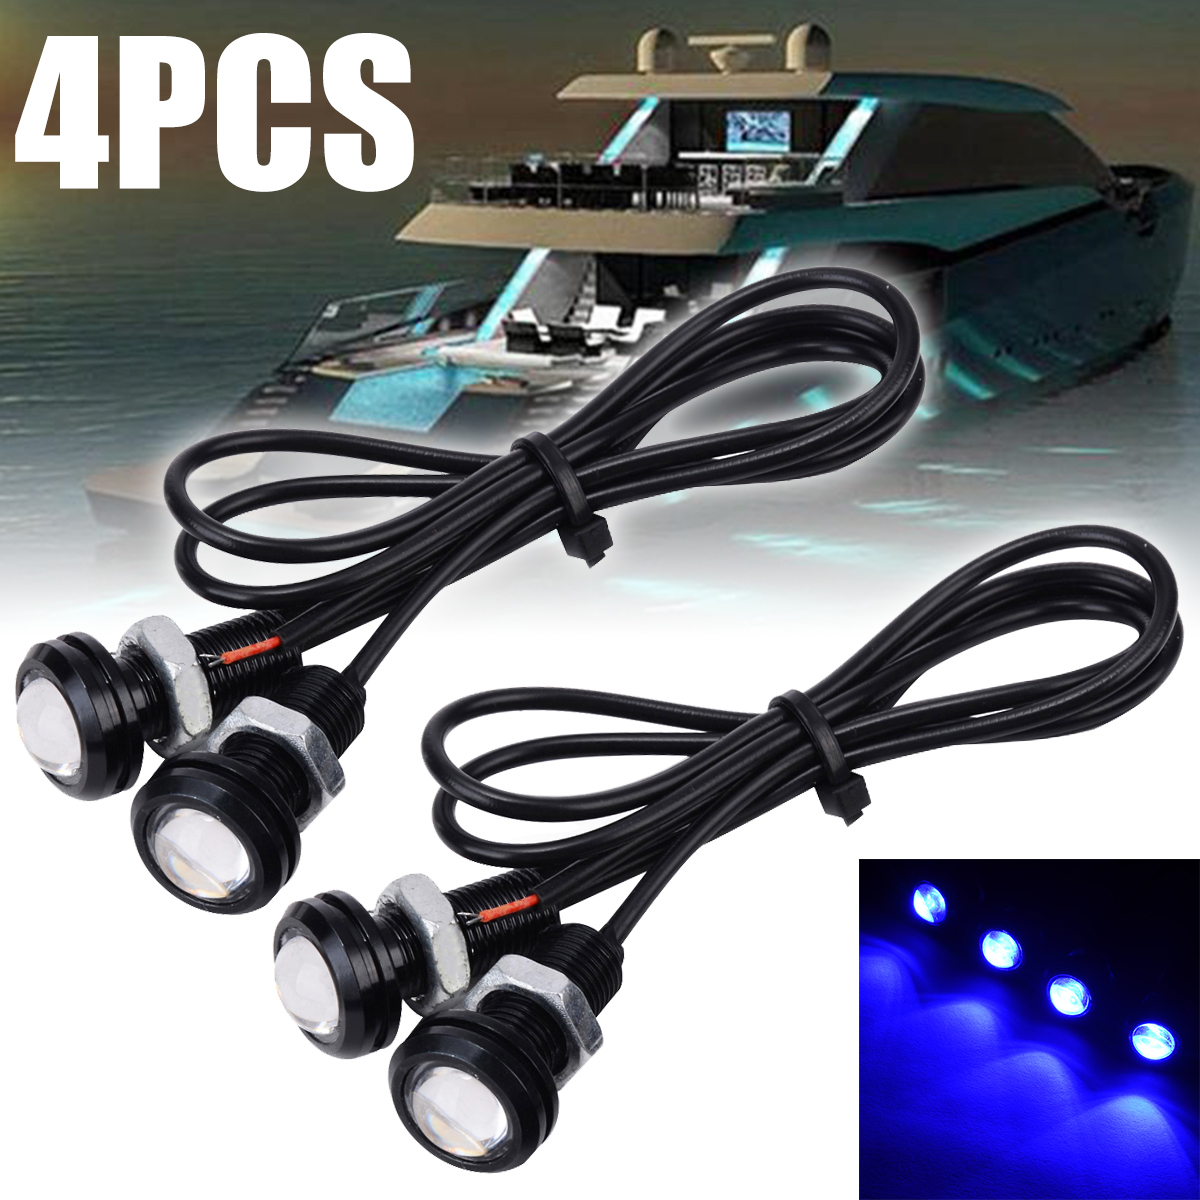 4pcs Boat Light Blue LED 12V Waterproof Underwater Fish Light Lamp Underwater Fish Boat Light Parts Accessories Universal-in Marine Hardware from Automobiles & Motorcycles